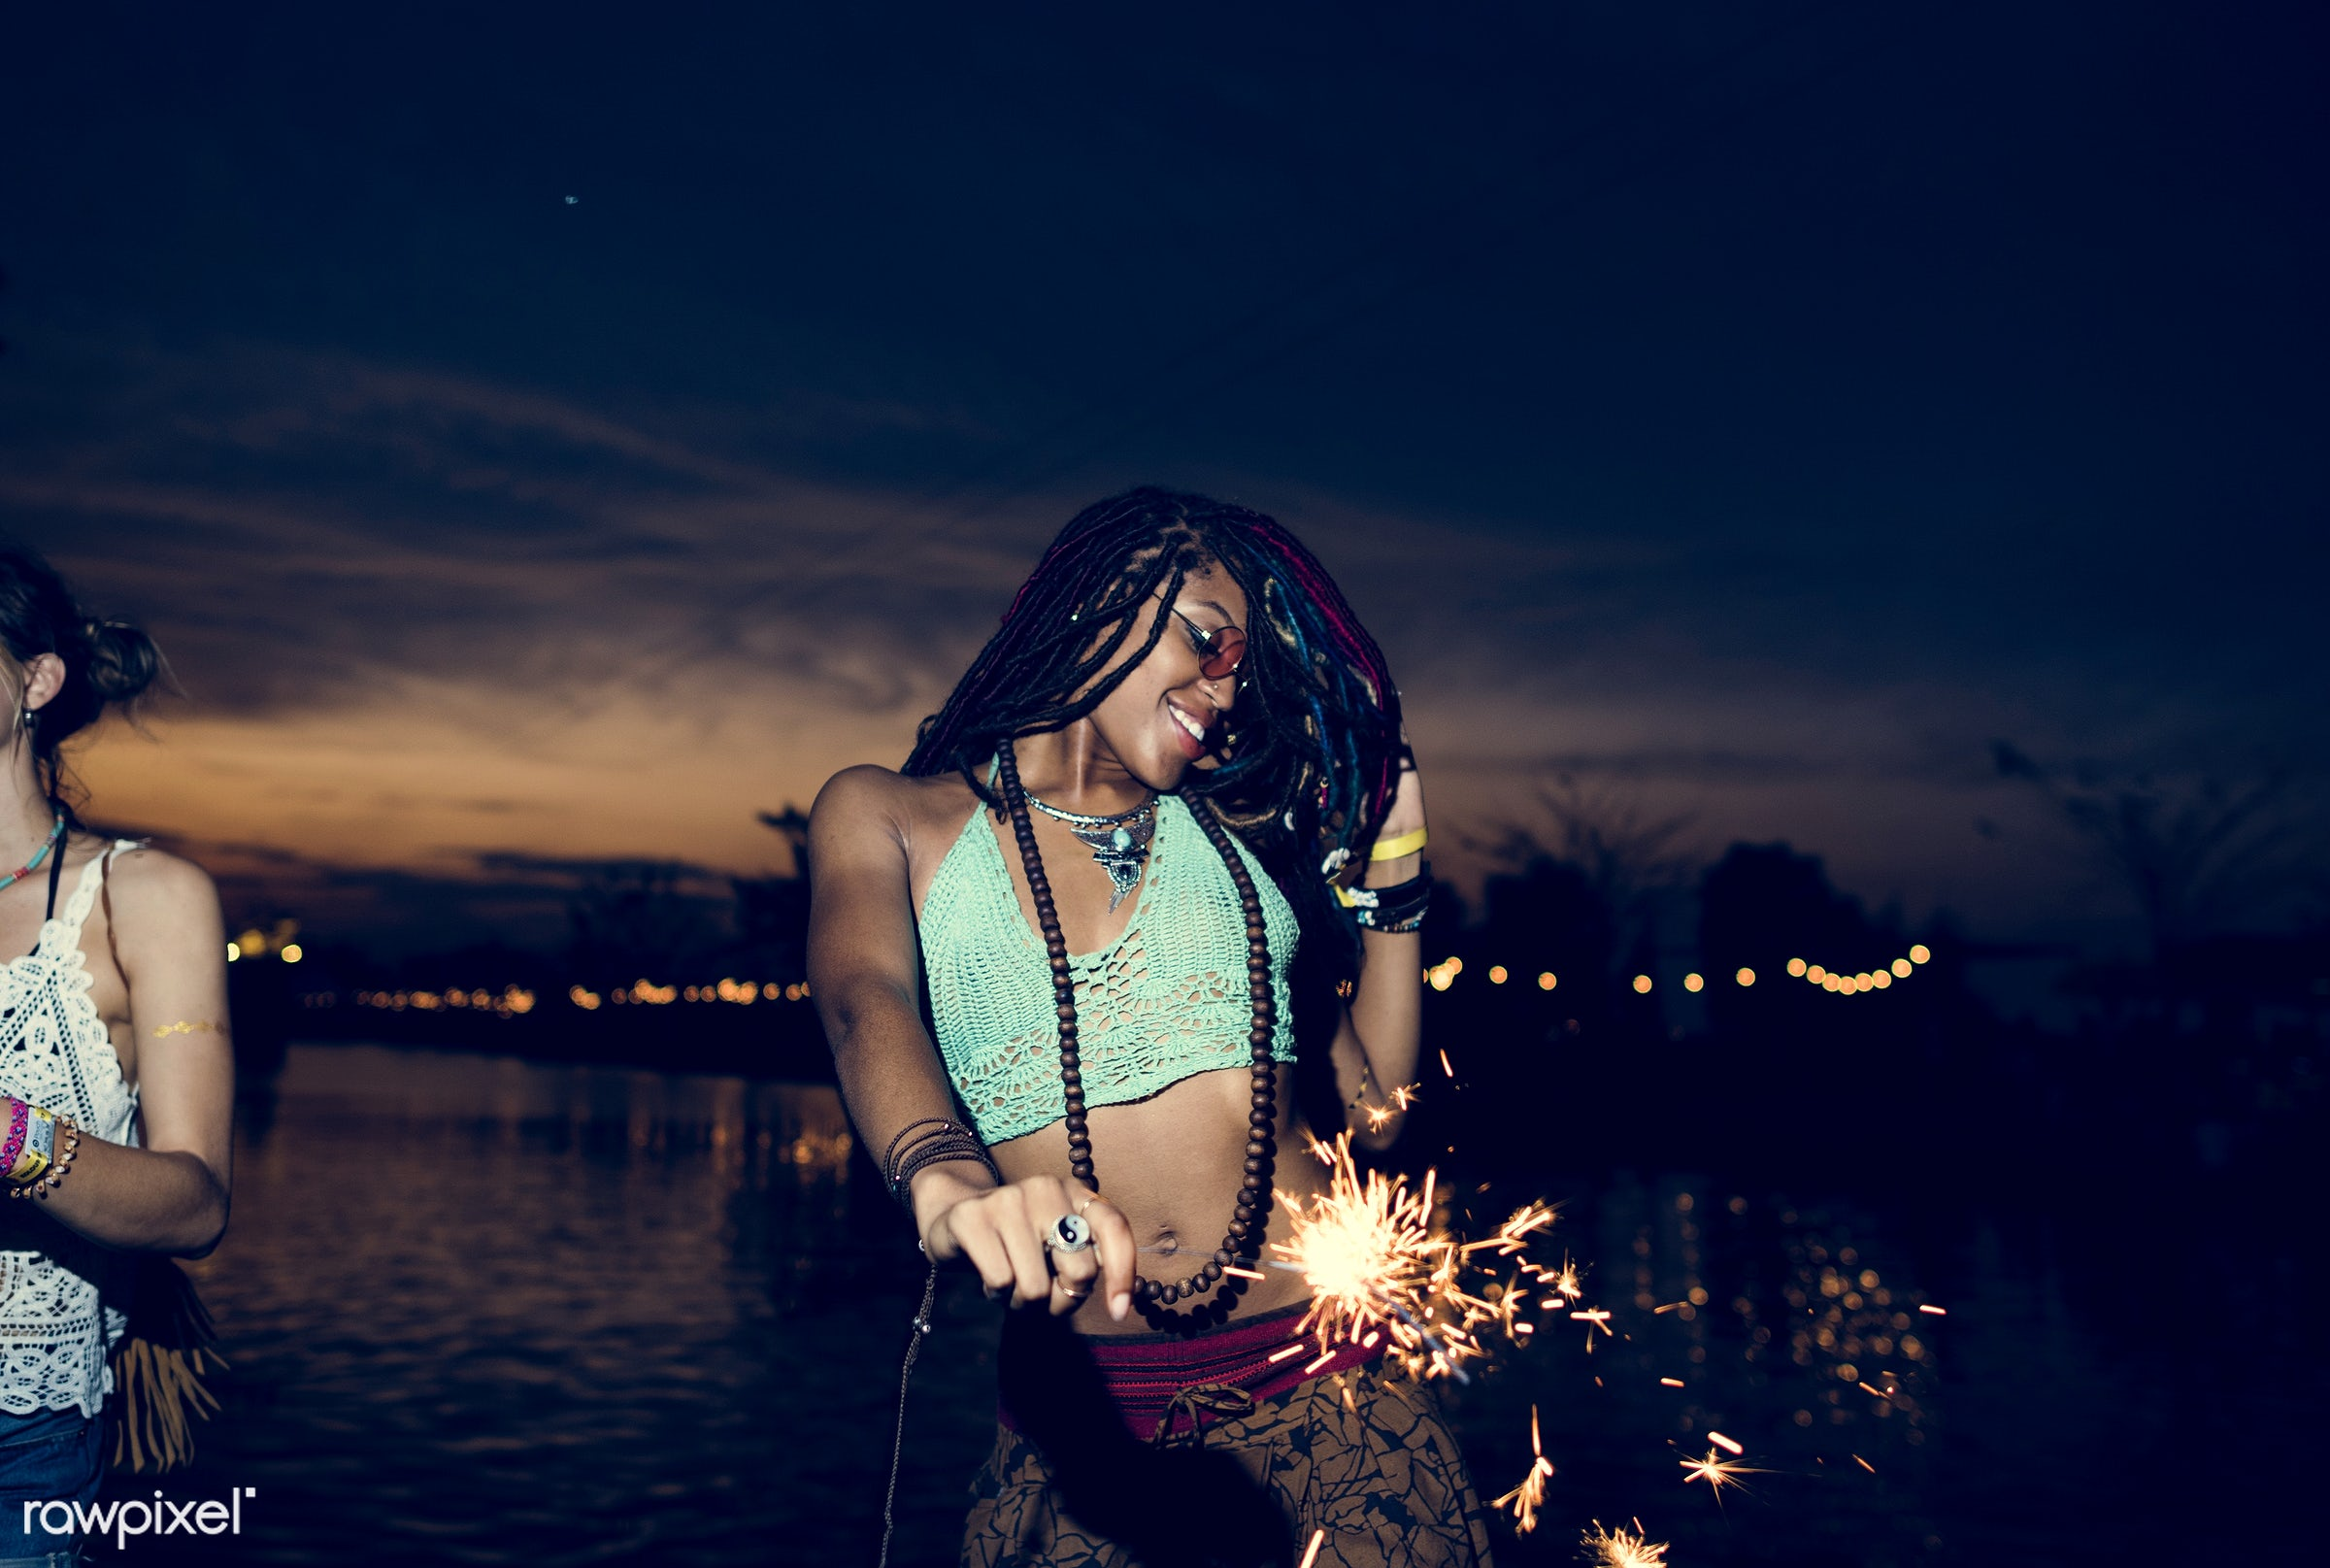 concert, person, relax, carefree, party, people, together, friends, sparkler, socializing, hands, event, lifestyle, weekend...